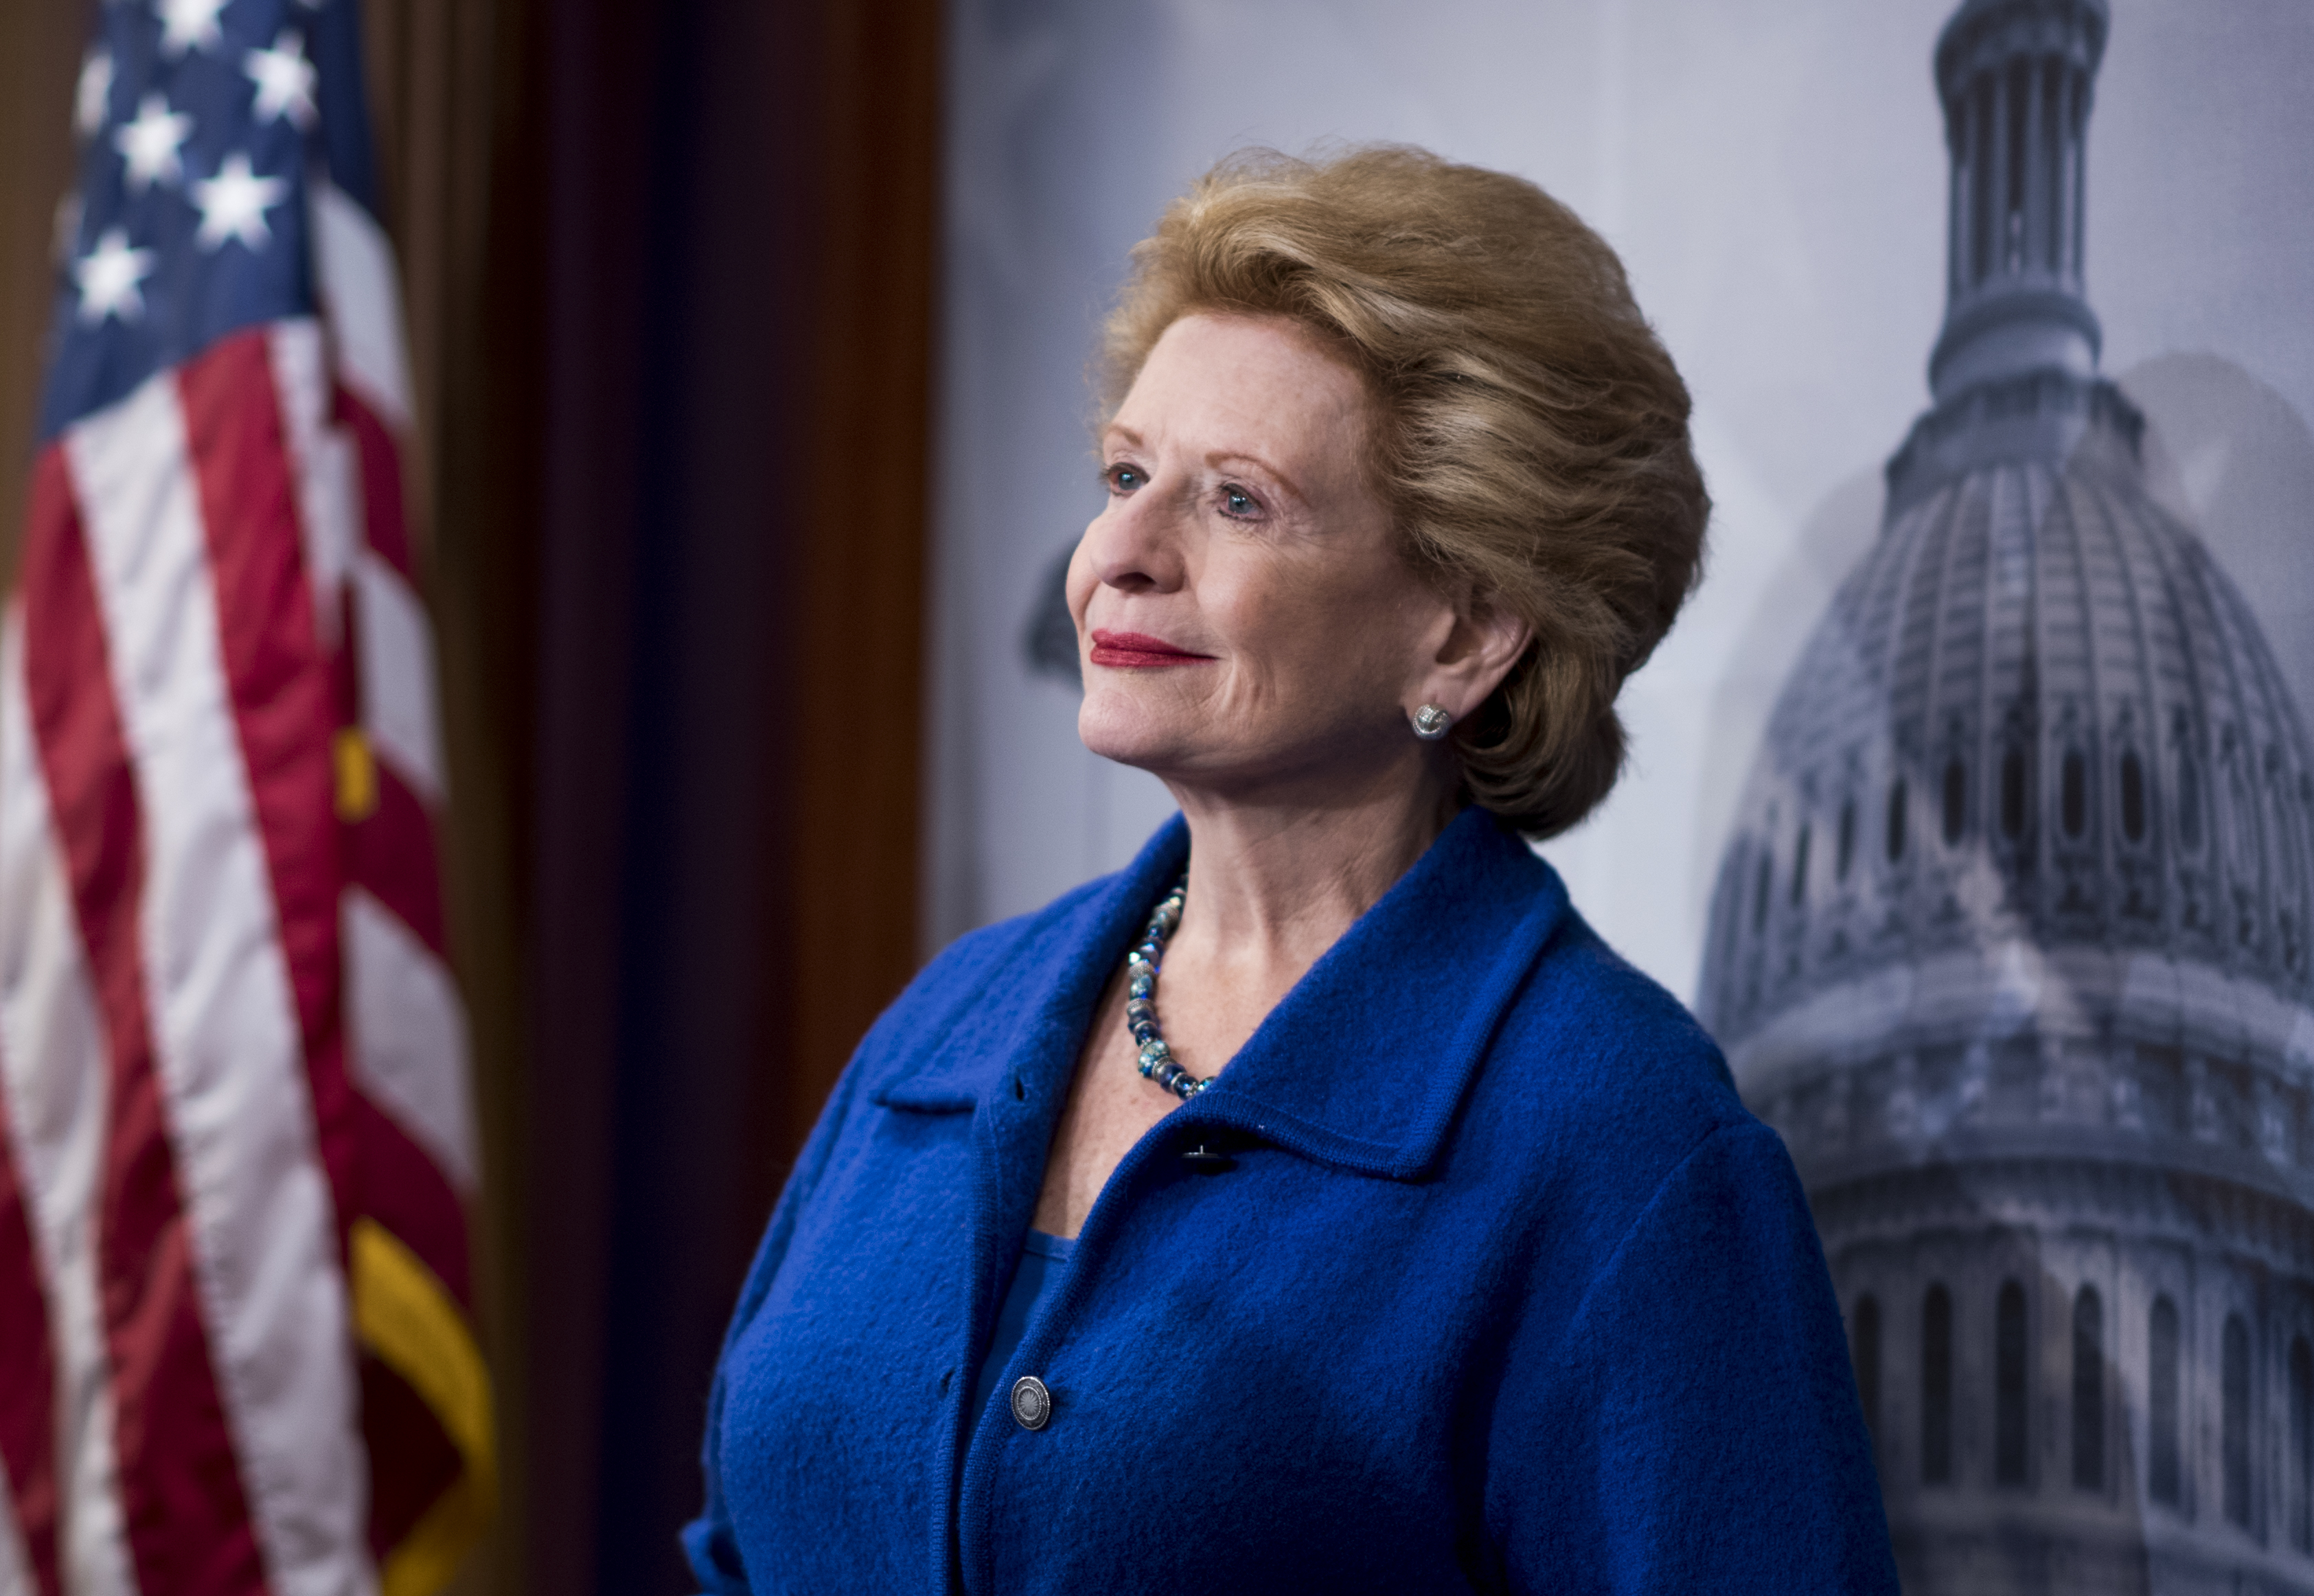 Sen. Debbie Stabenow, D-Mich., participates in the Senate Democrats' news conference to unveil a plan to protect and expand retirement savings on Tuesday, Oct. 31, 2017.